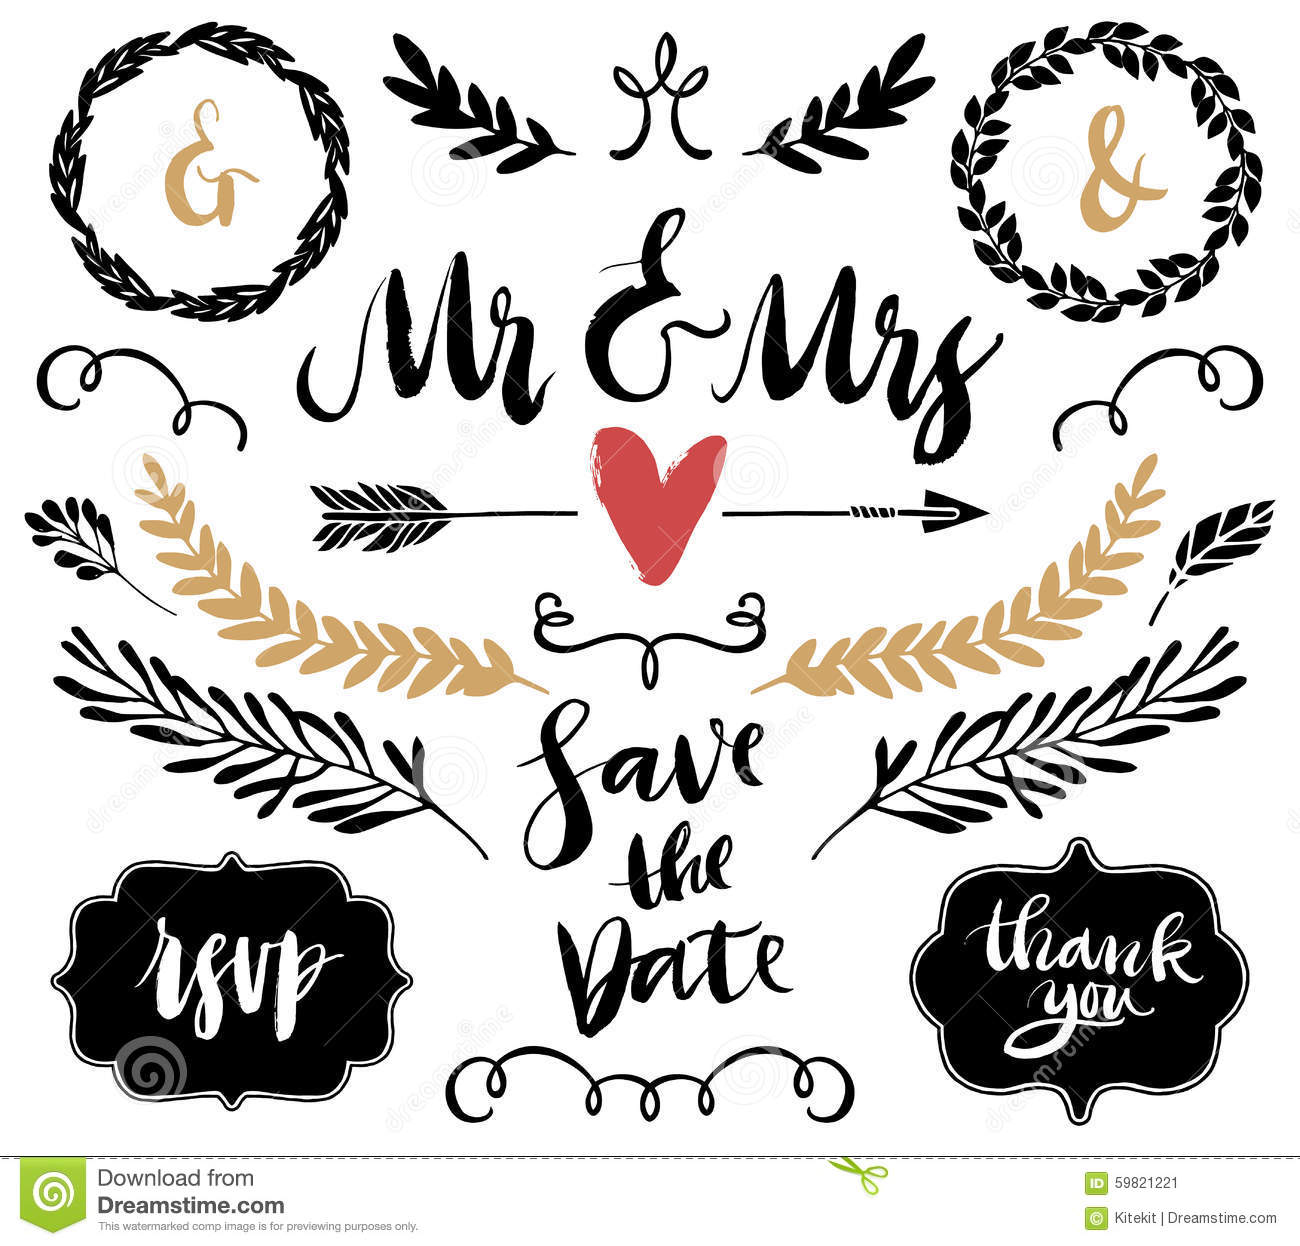 Wedding Graphics: Wedding Graphic Set, Arrows, Hearts, Laurel, Wreaths